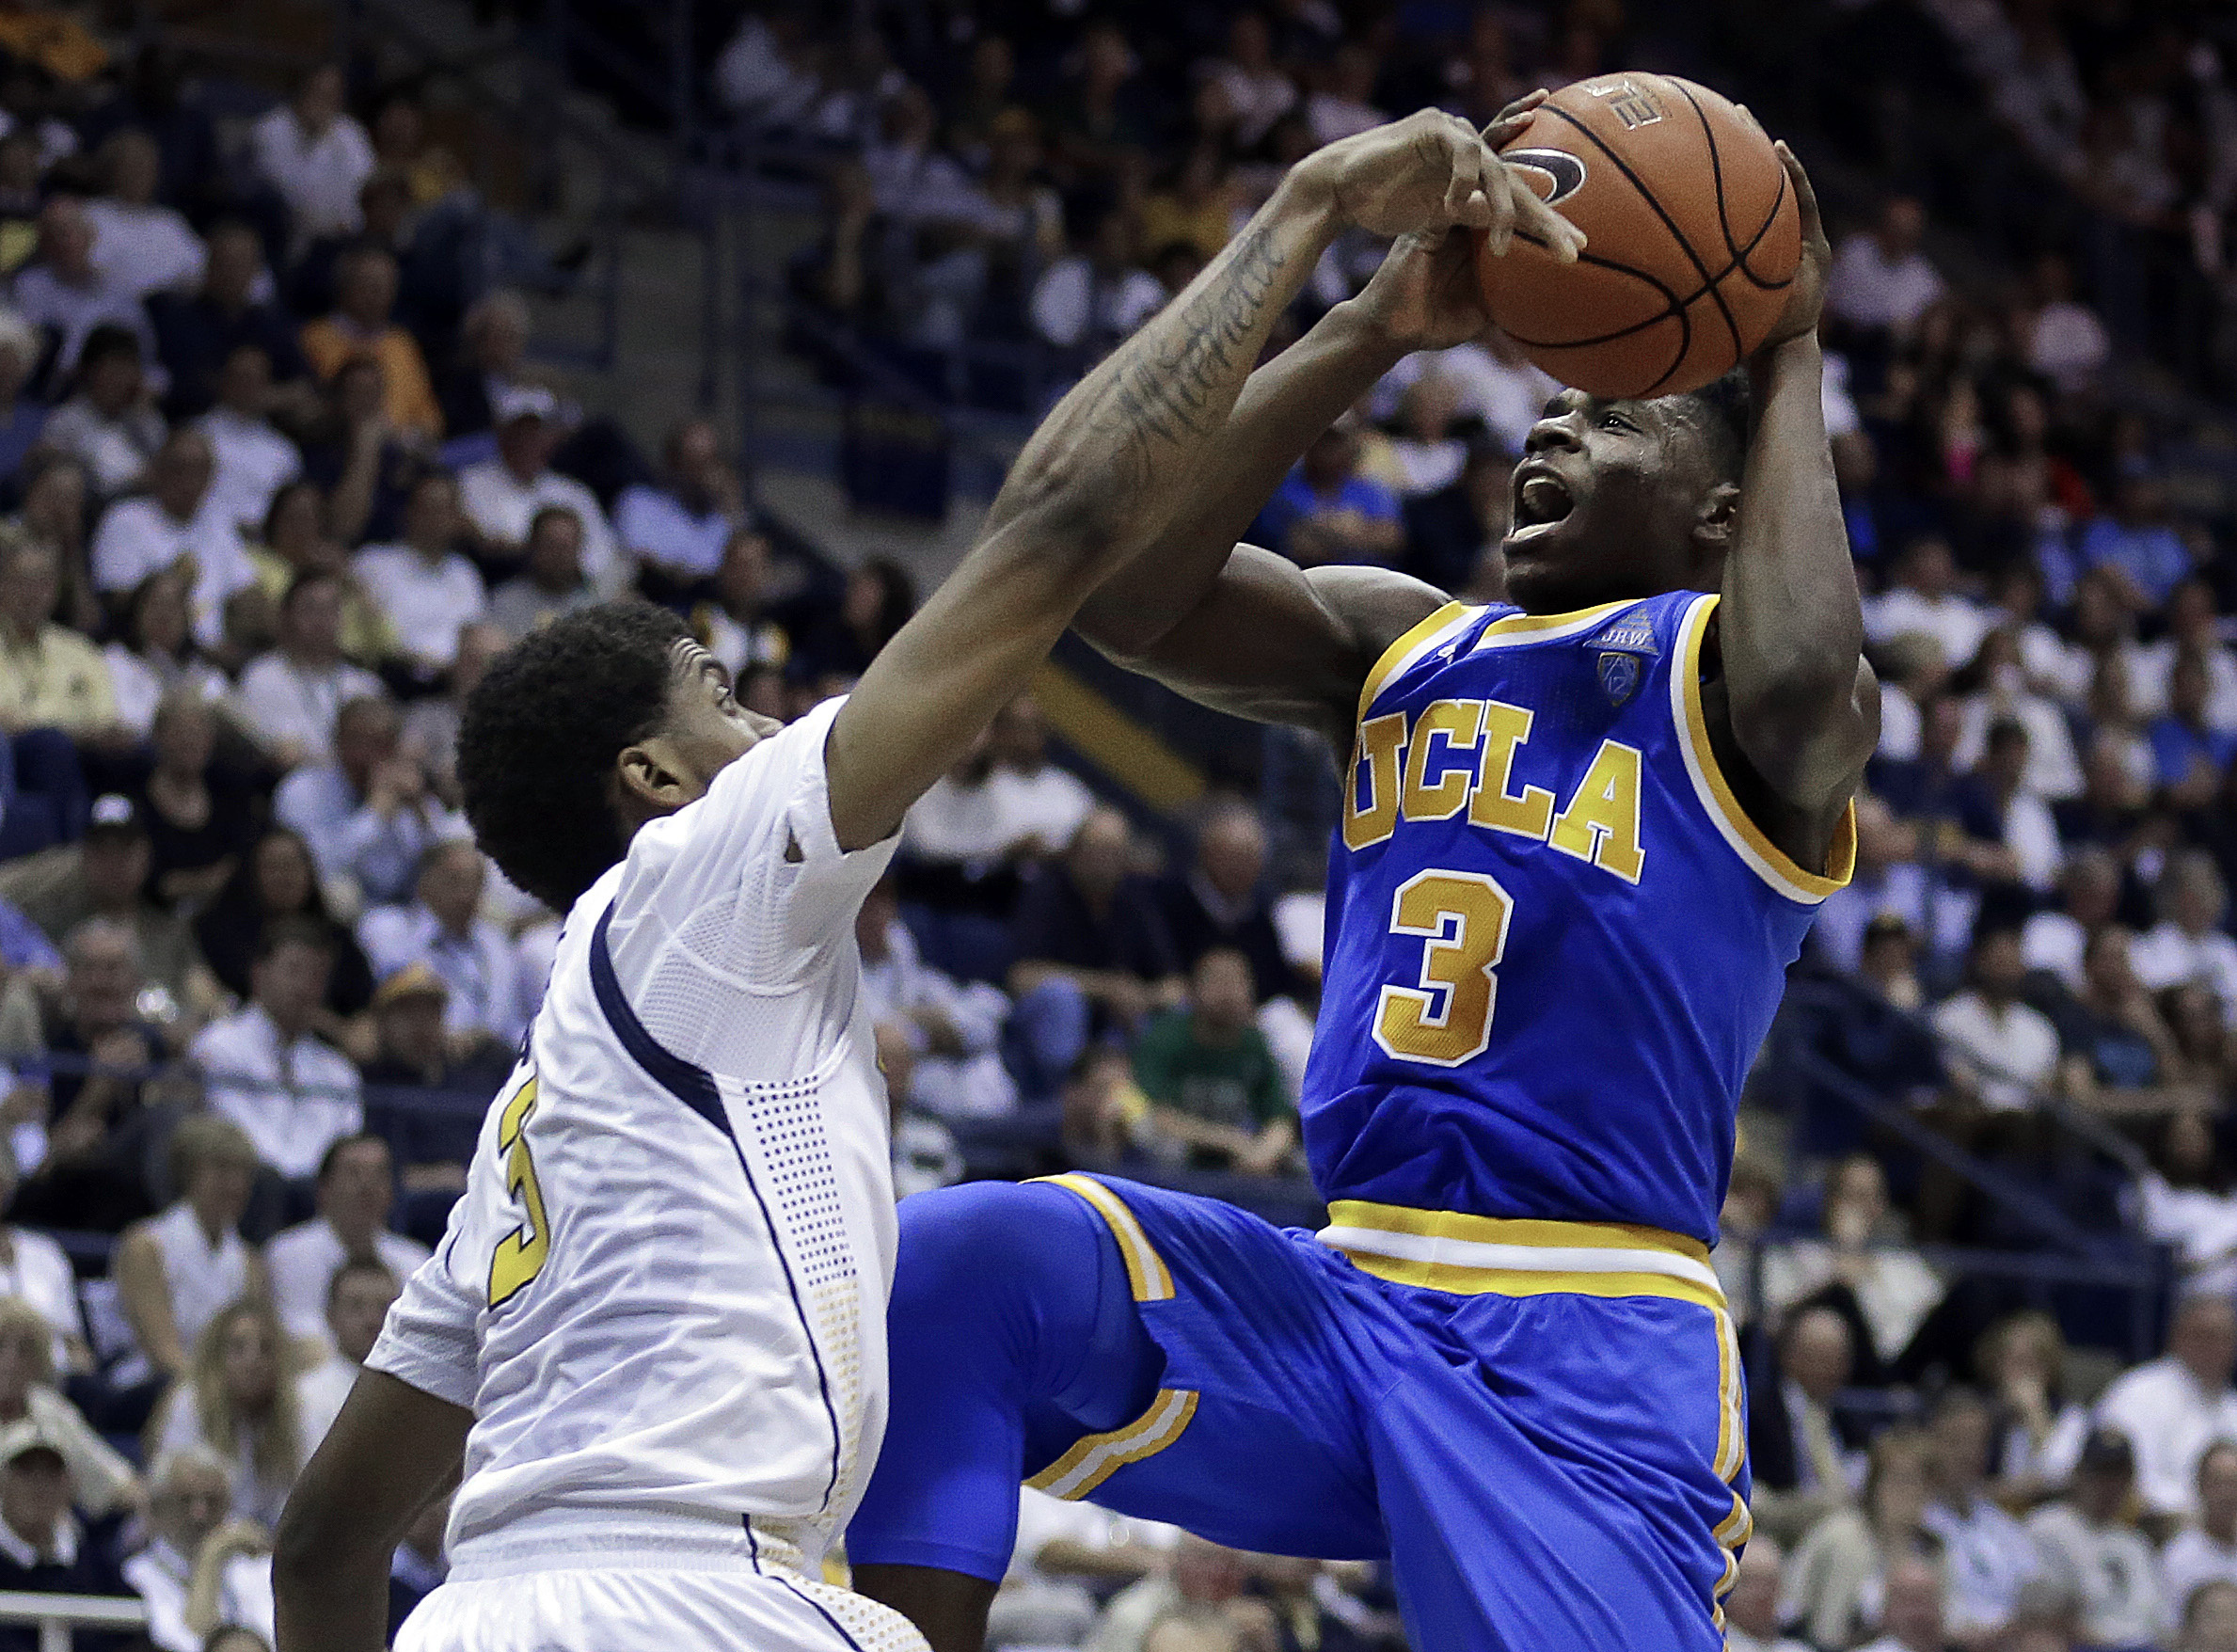 UCLA's Aaron Holiday, right, shoots over California's Tyrone Wallace during the second half of an NCAA college basketball game Thursday, Feb. 25, 2016, in Berkeley, Calif. (AP Photo/Ben Margot)